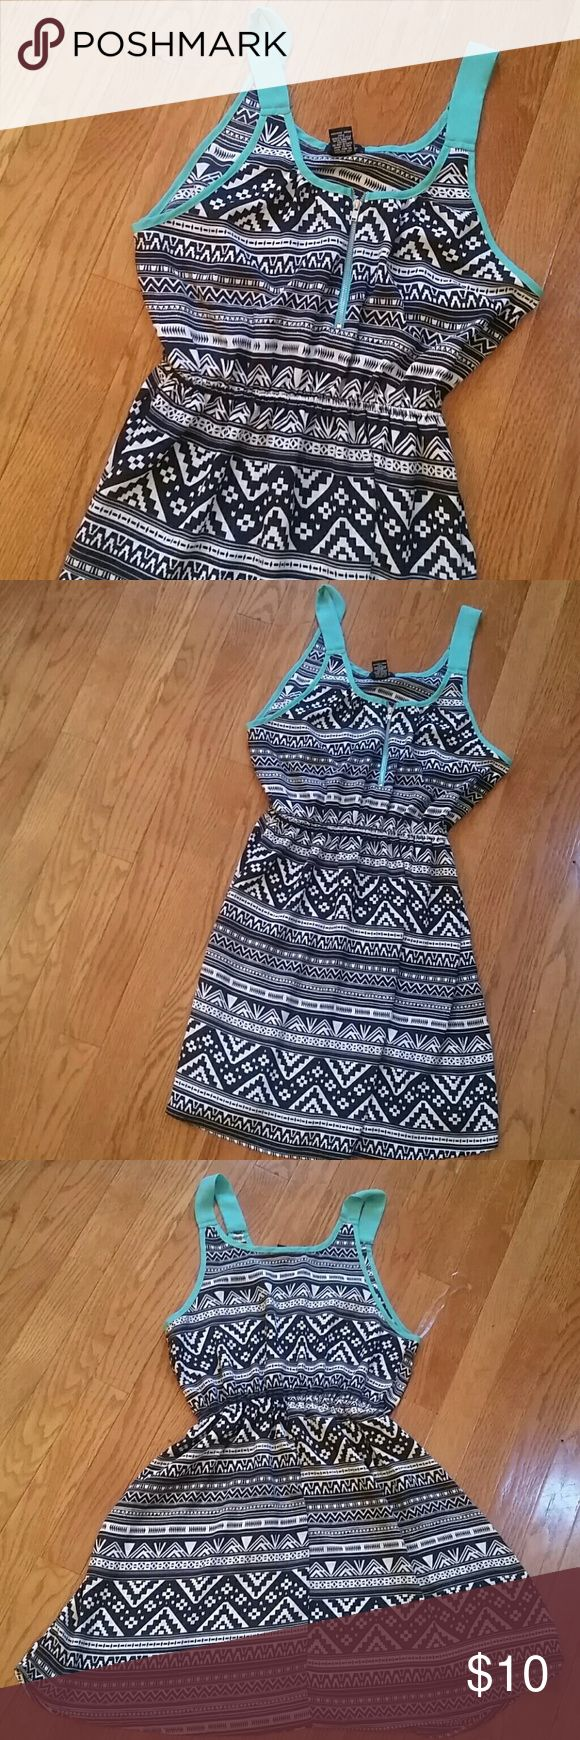 Rue21 Aztec Summer Dress Black white and teal Aztec dress from Rue21. Exposed zipper on front, with elastic waist. Excellent used condition. Rue21 Dresses